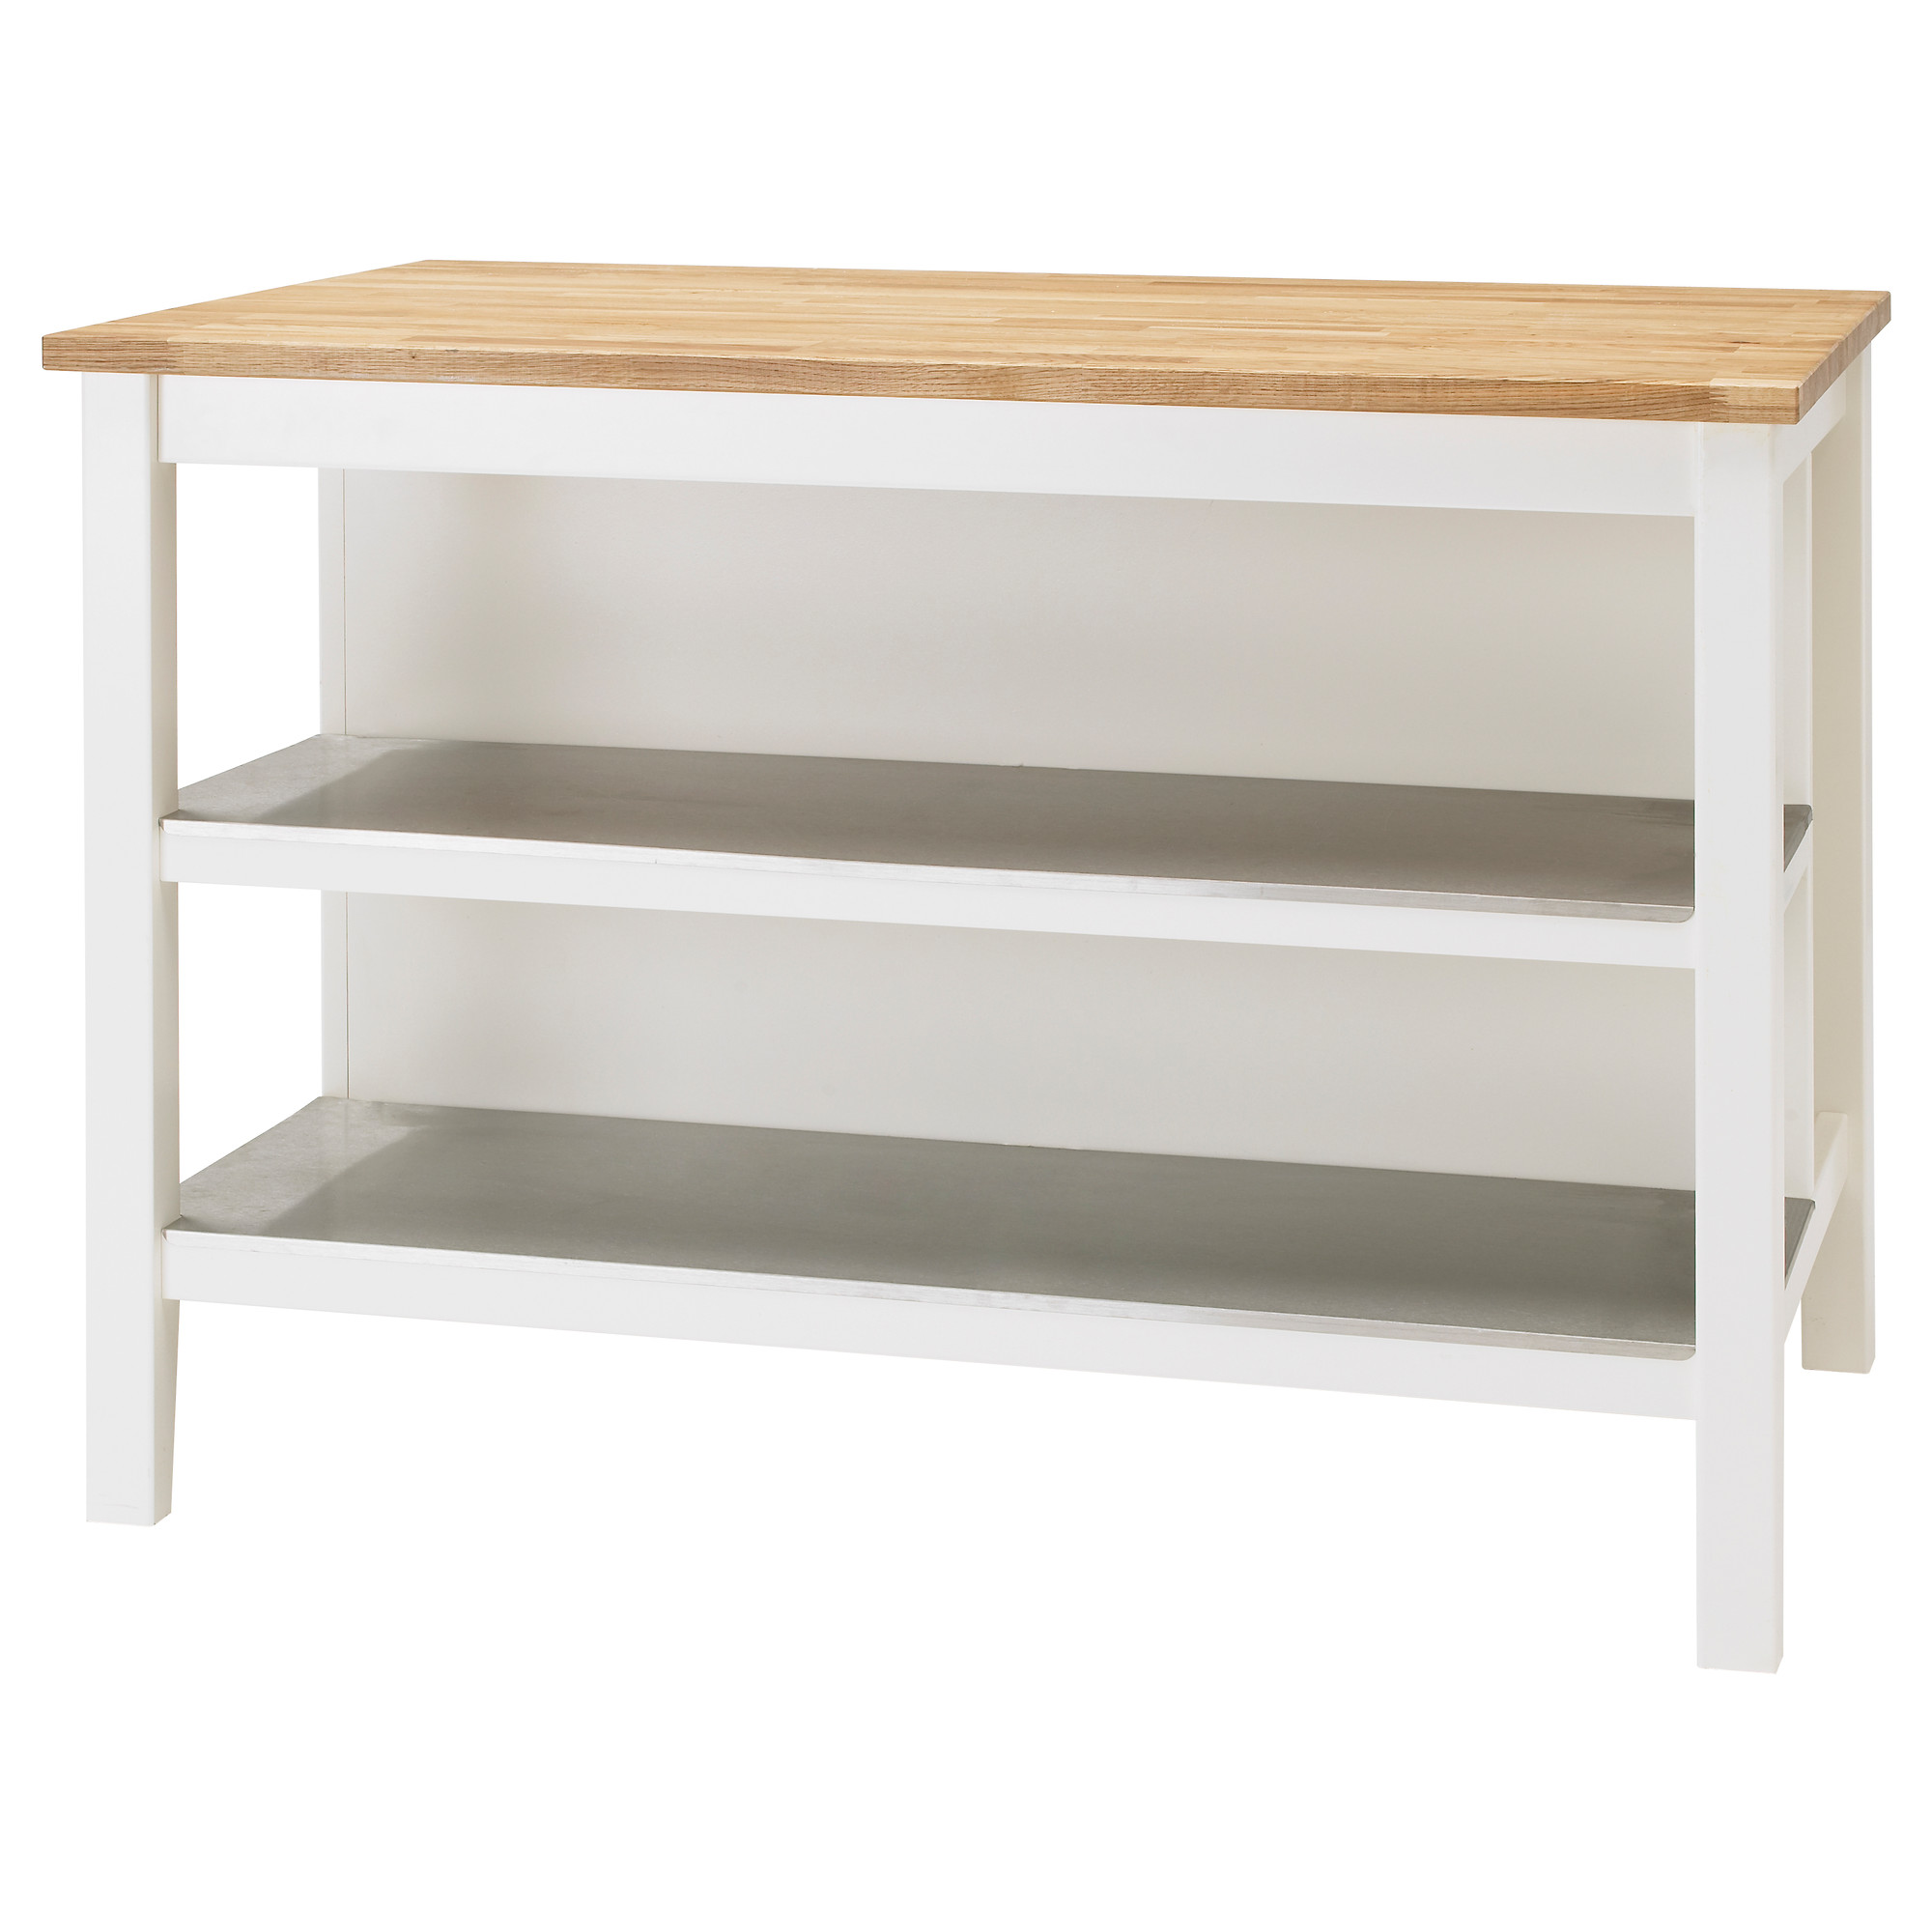 Kitchen Islands for Sale Ikea | Ikea Breakfast Bar Island | Stenstorp Kitchen Island